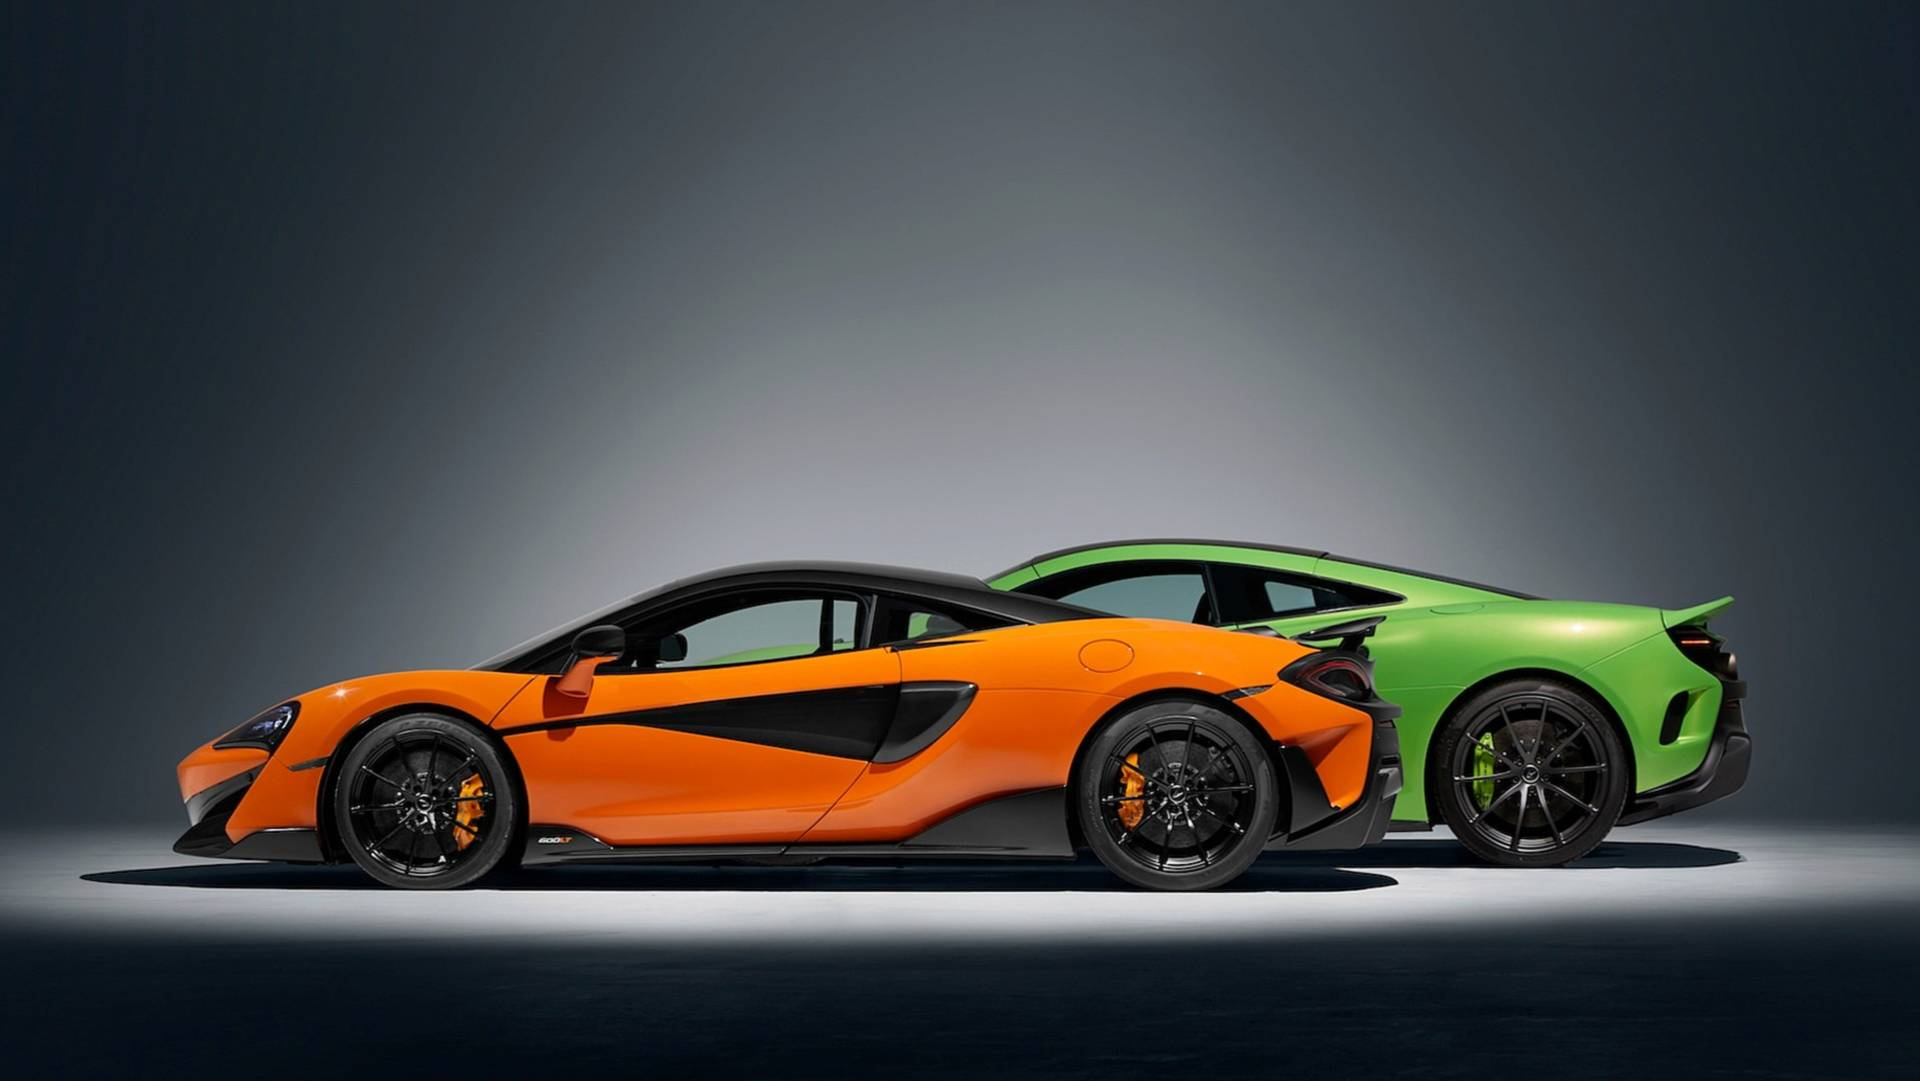 McLaren to Launch 18 New Hybrid Cars by 2025 - autoevolution